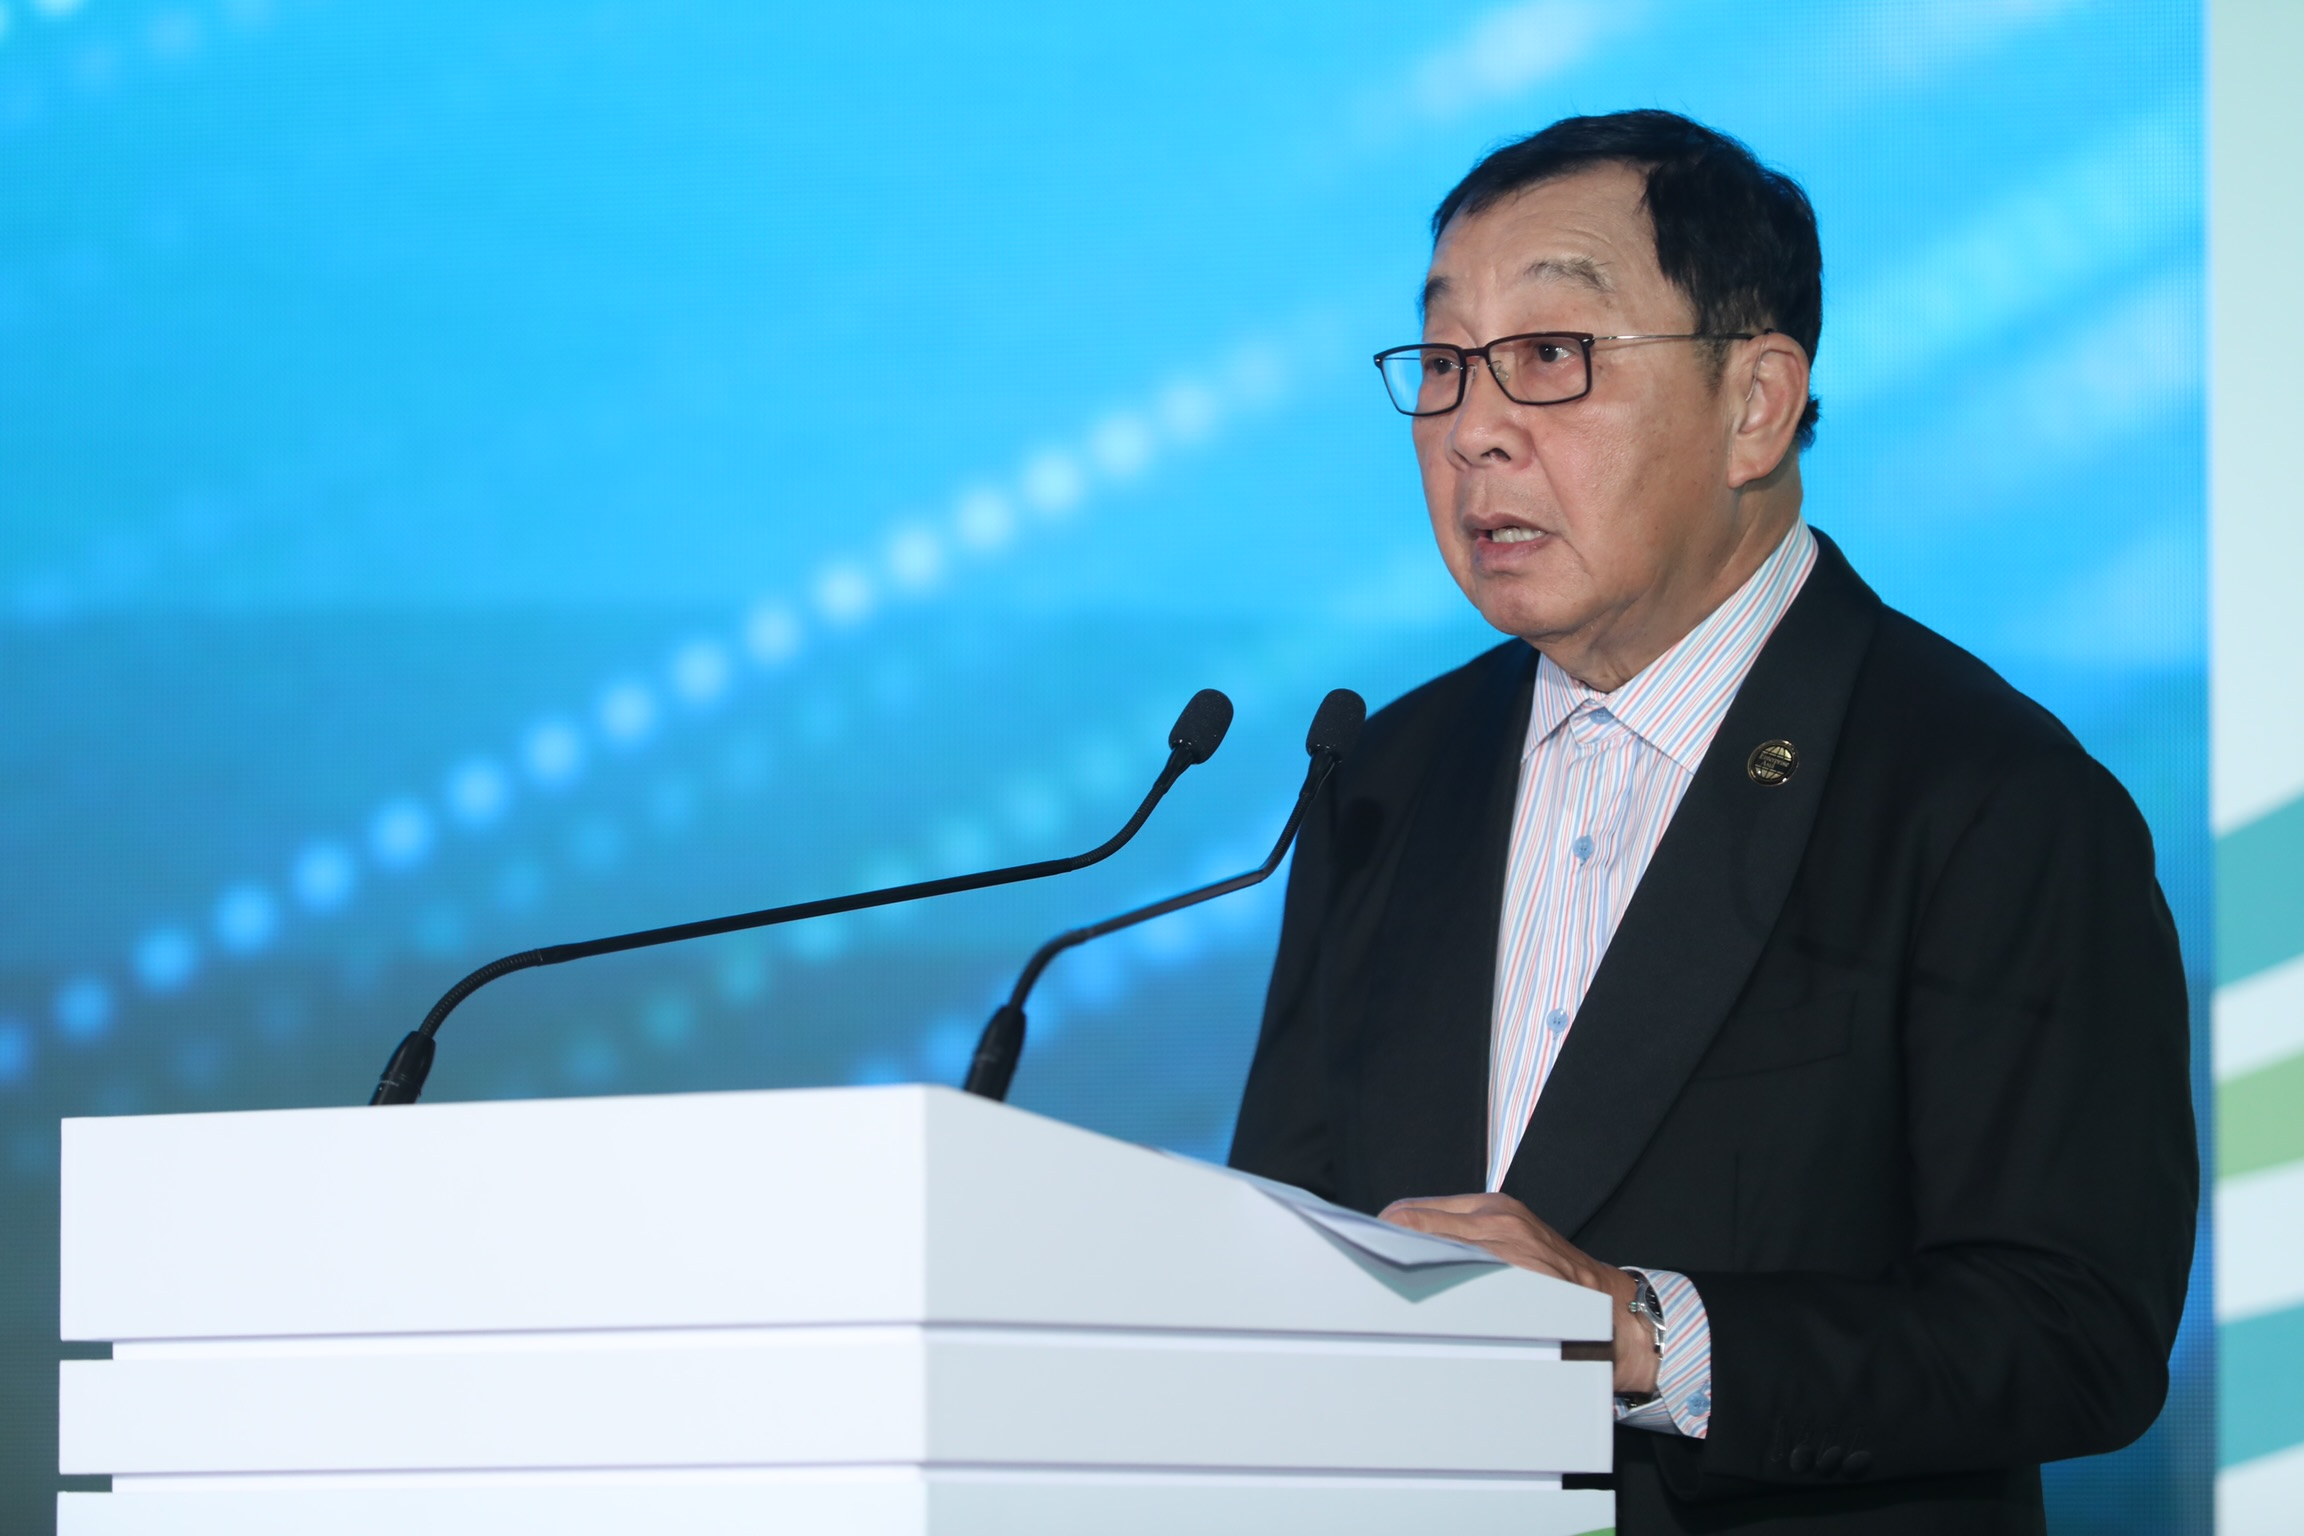 Dr. Fong Chan Onn, chairman of Enterprise Asia, delivers the welcome address. Photo: Minh Huynh